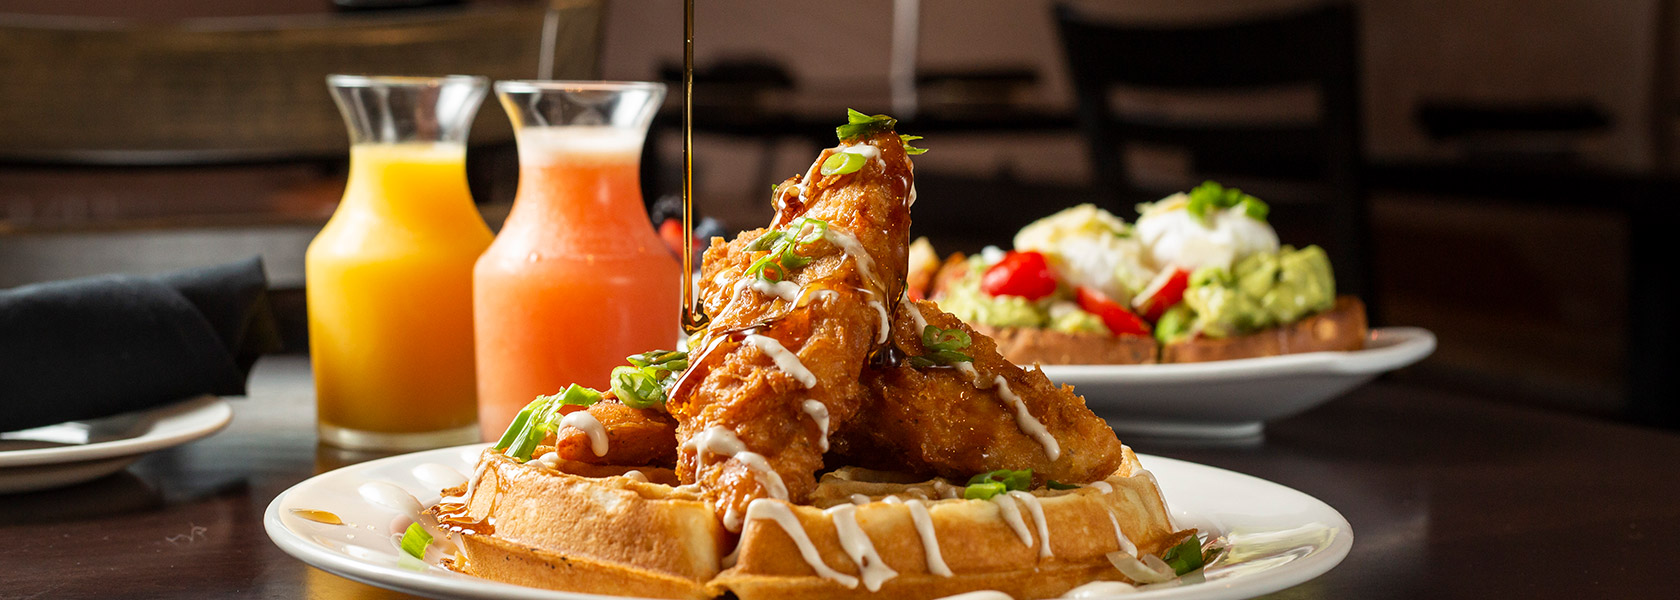 Syrup being drizzled over fried chicken on waffles with breakfast juices in background